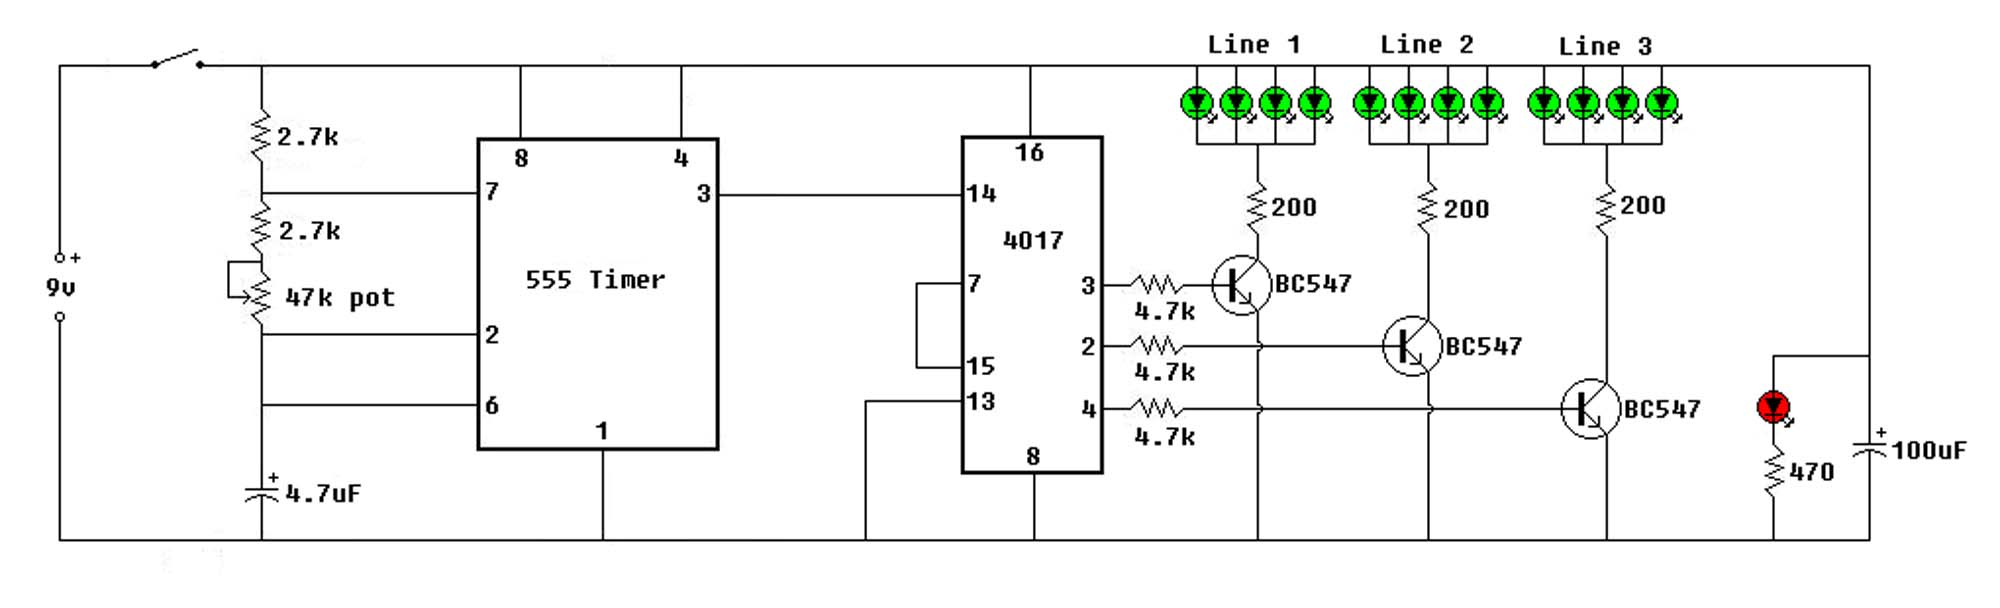 12au7 Ecc82 Tube Pre lifier Circuit moreover Three Led Flasher By 3 Transistor Astable Multivibrator further Watch likewise Traffic Lights Wiring Diagram in addition 1 8 Channel Led Sign Sequencer. on led sequencer circuit